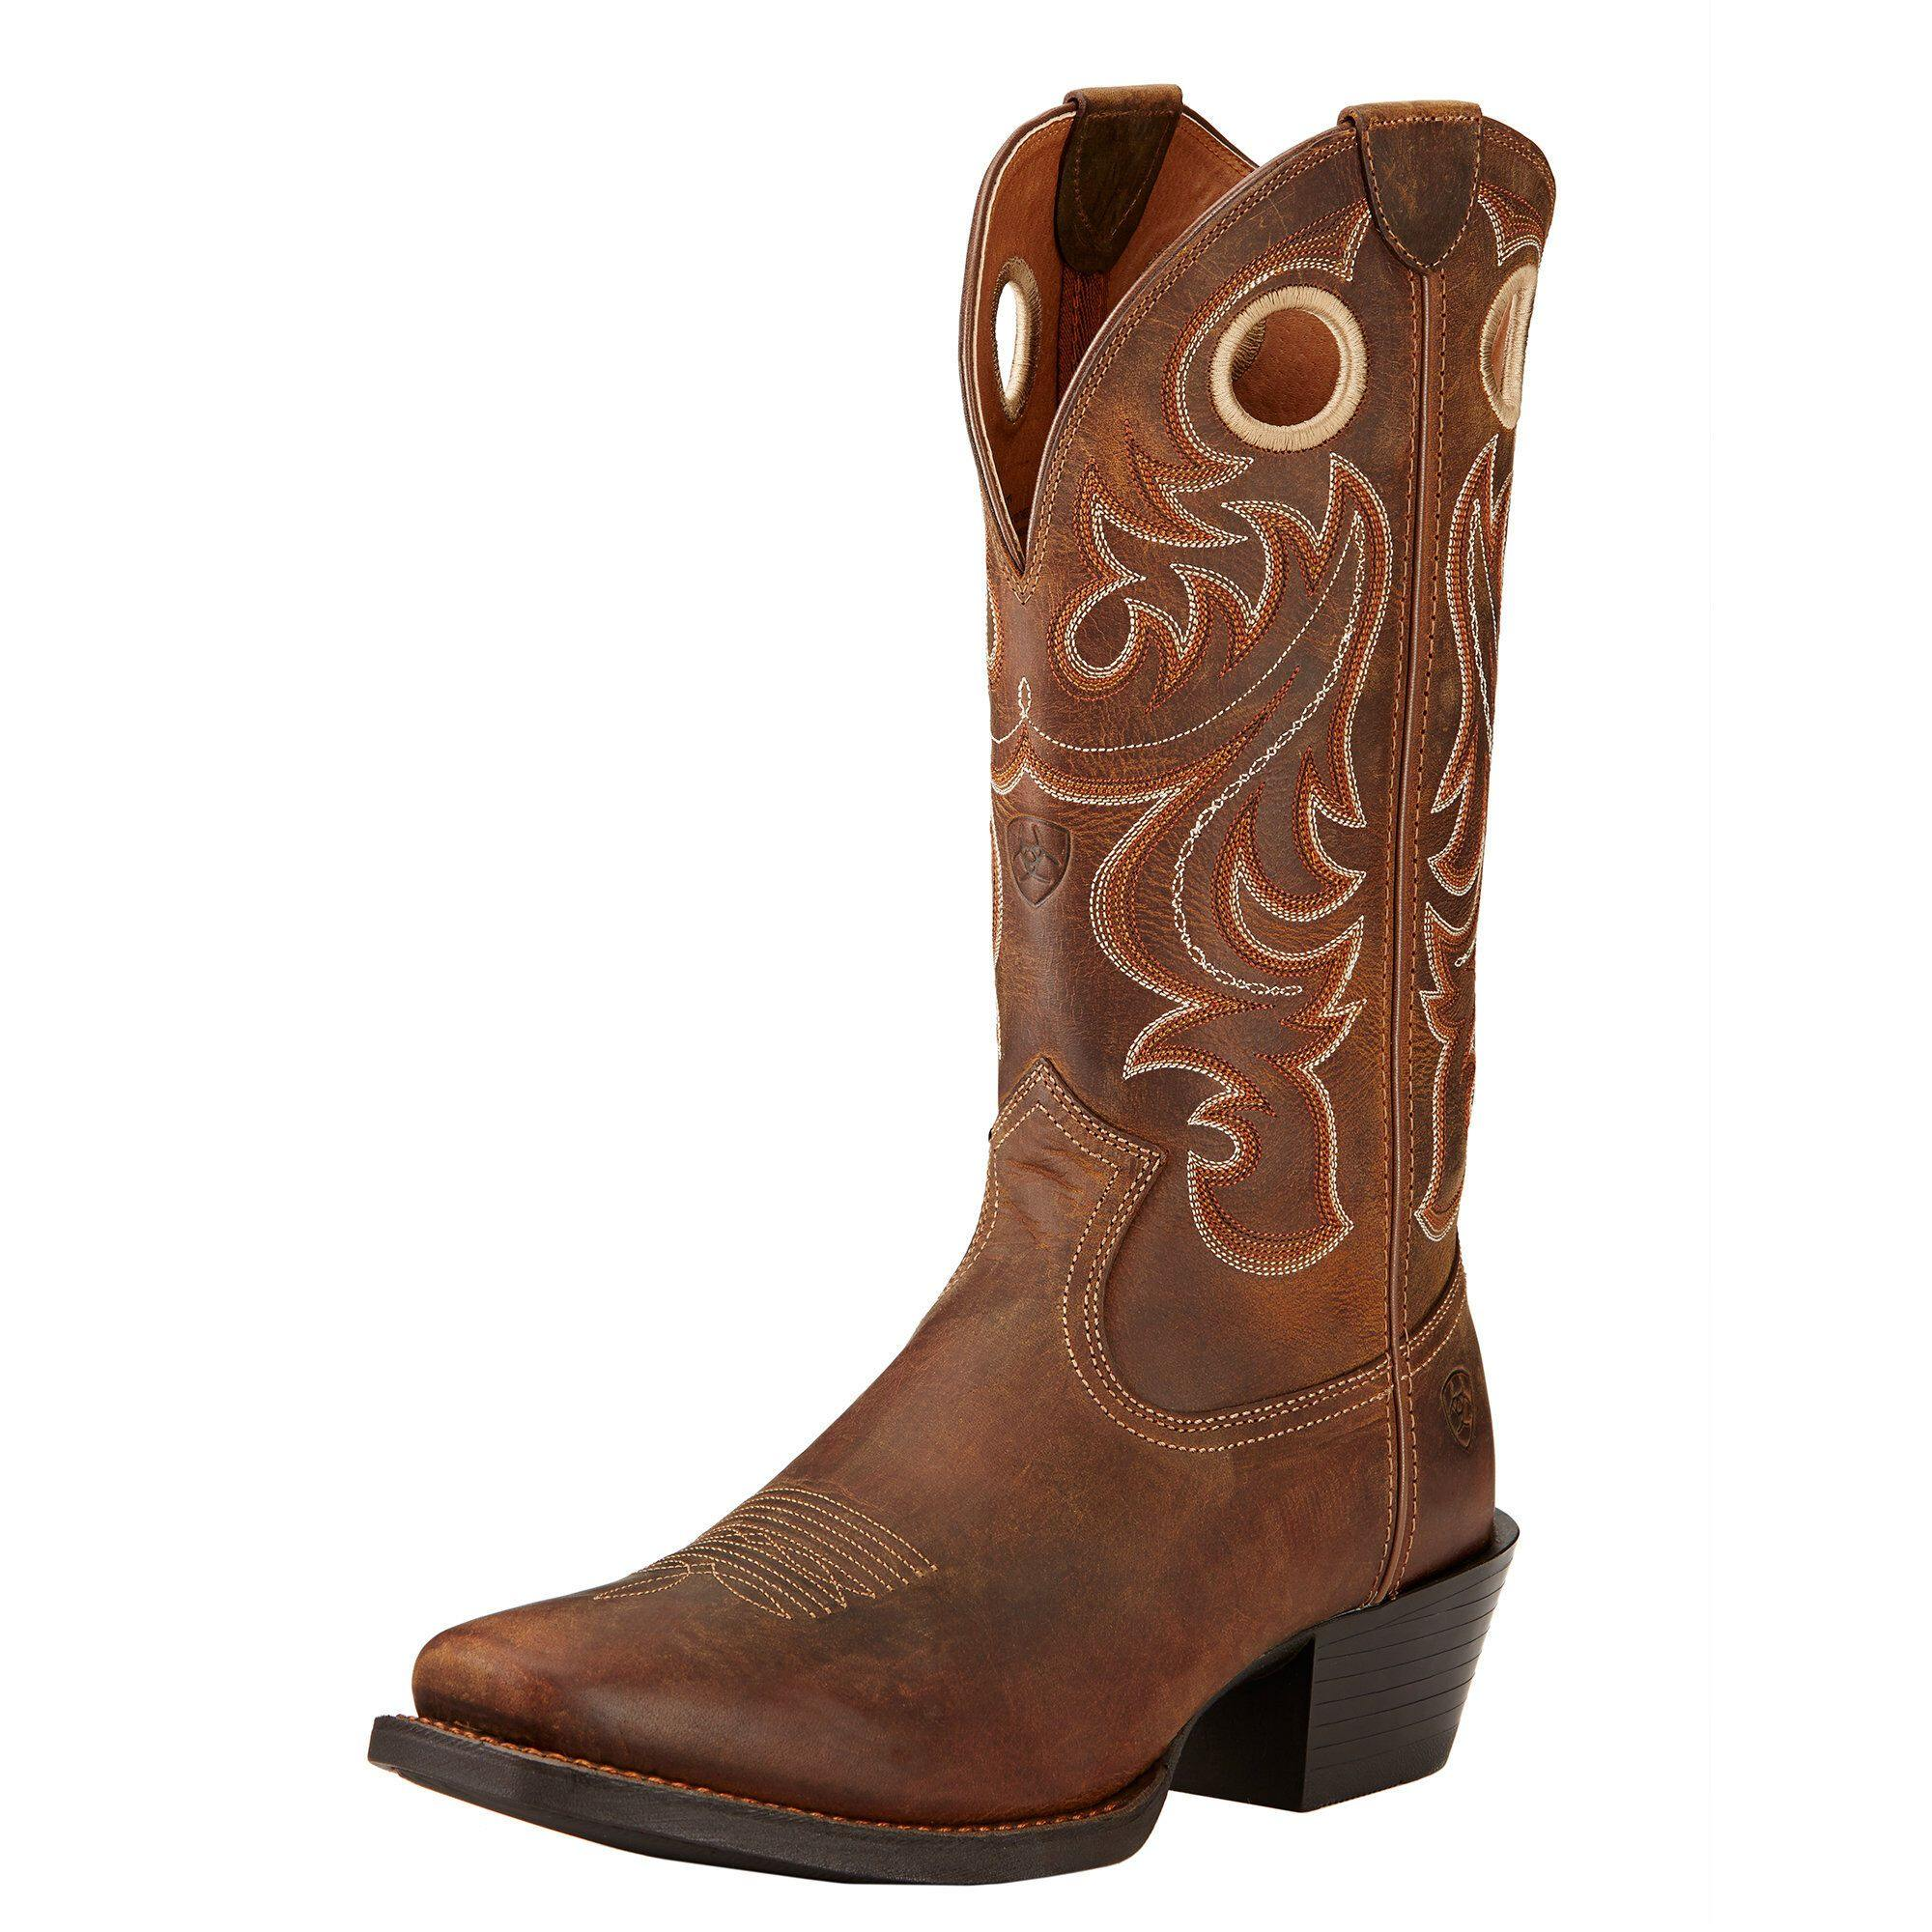 MEN'S Sport Square Toe Western Boot - CWesternwear